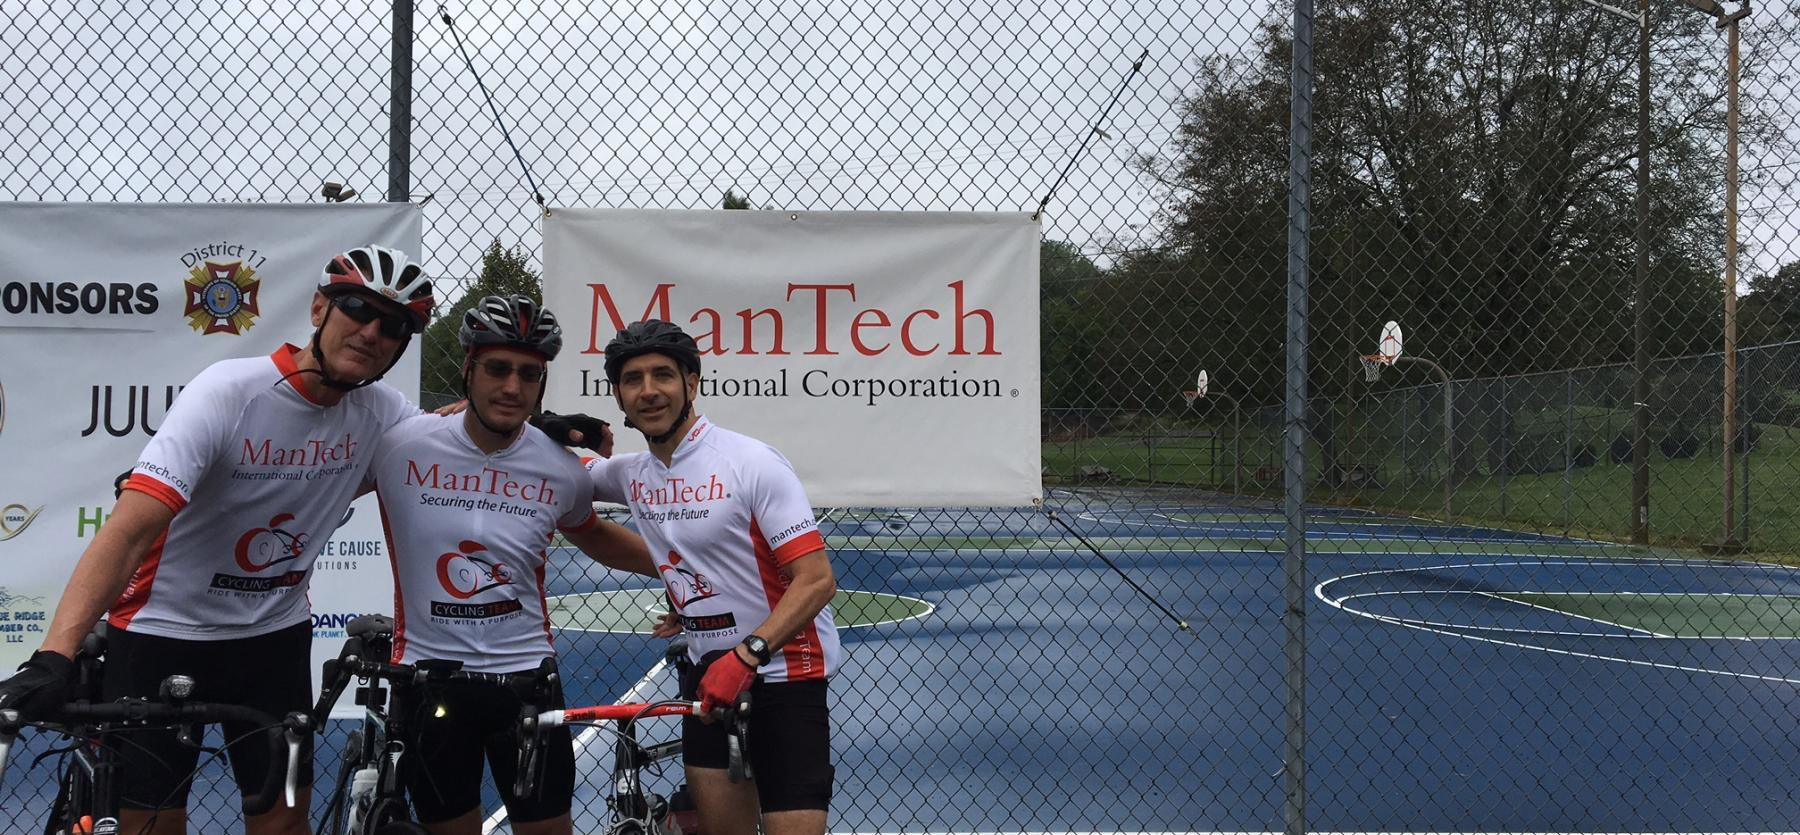 ManTech employees on bicycle